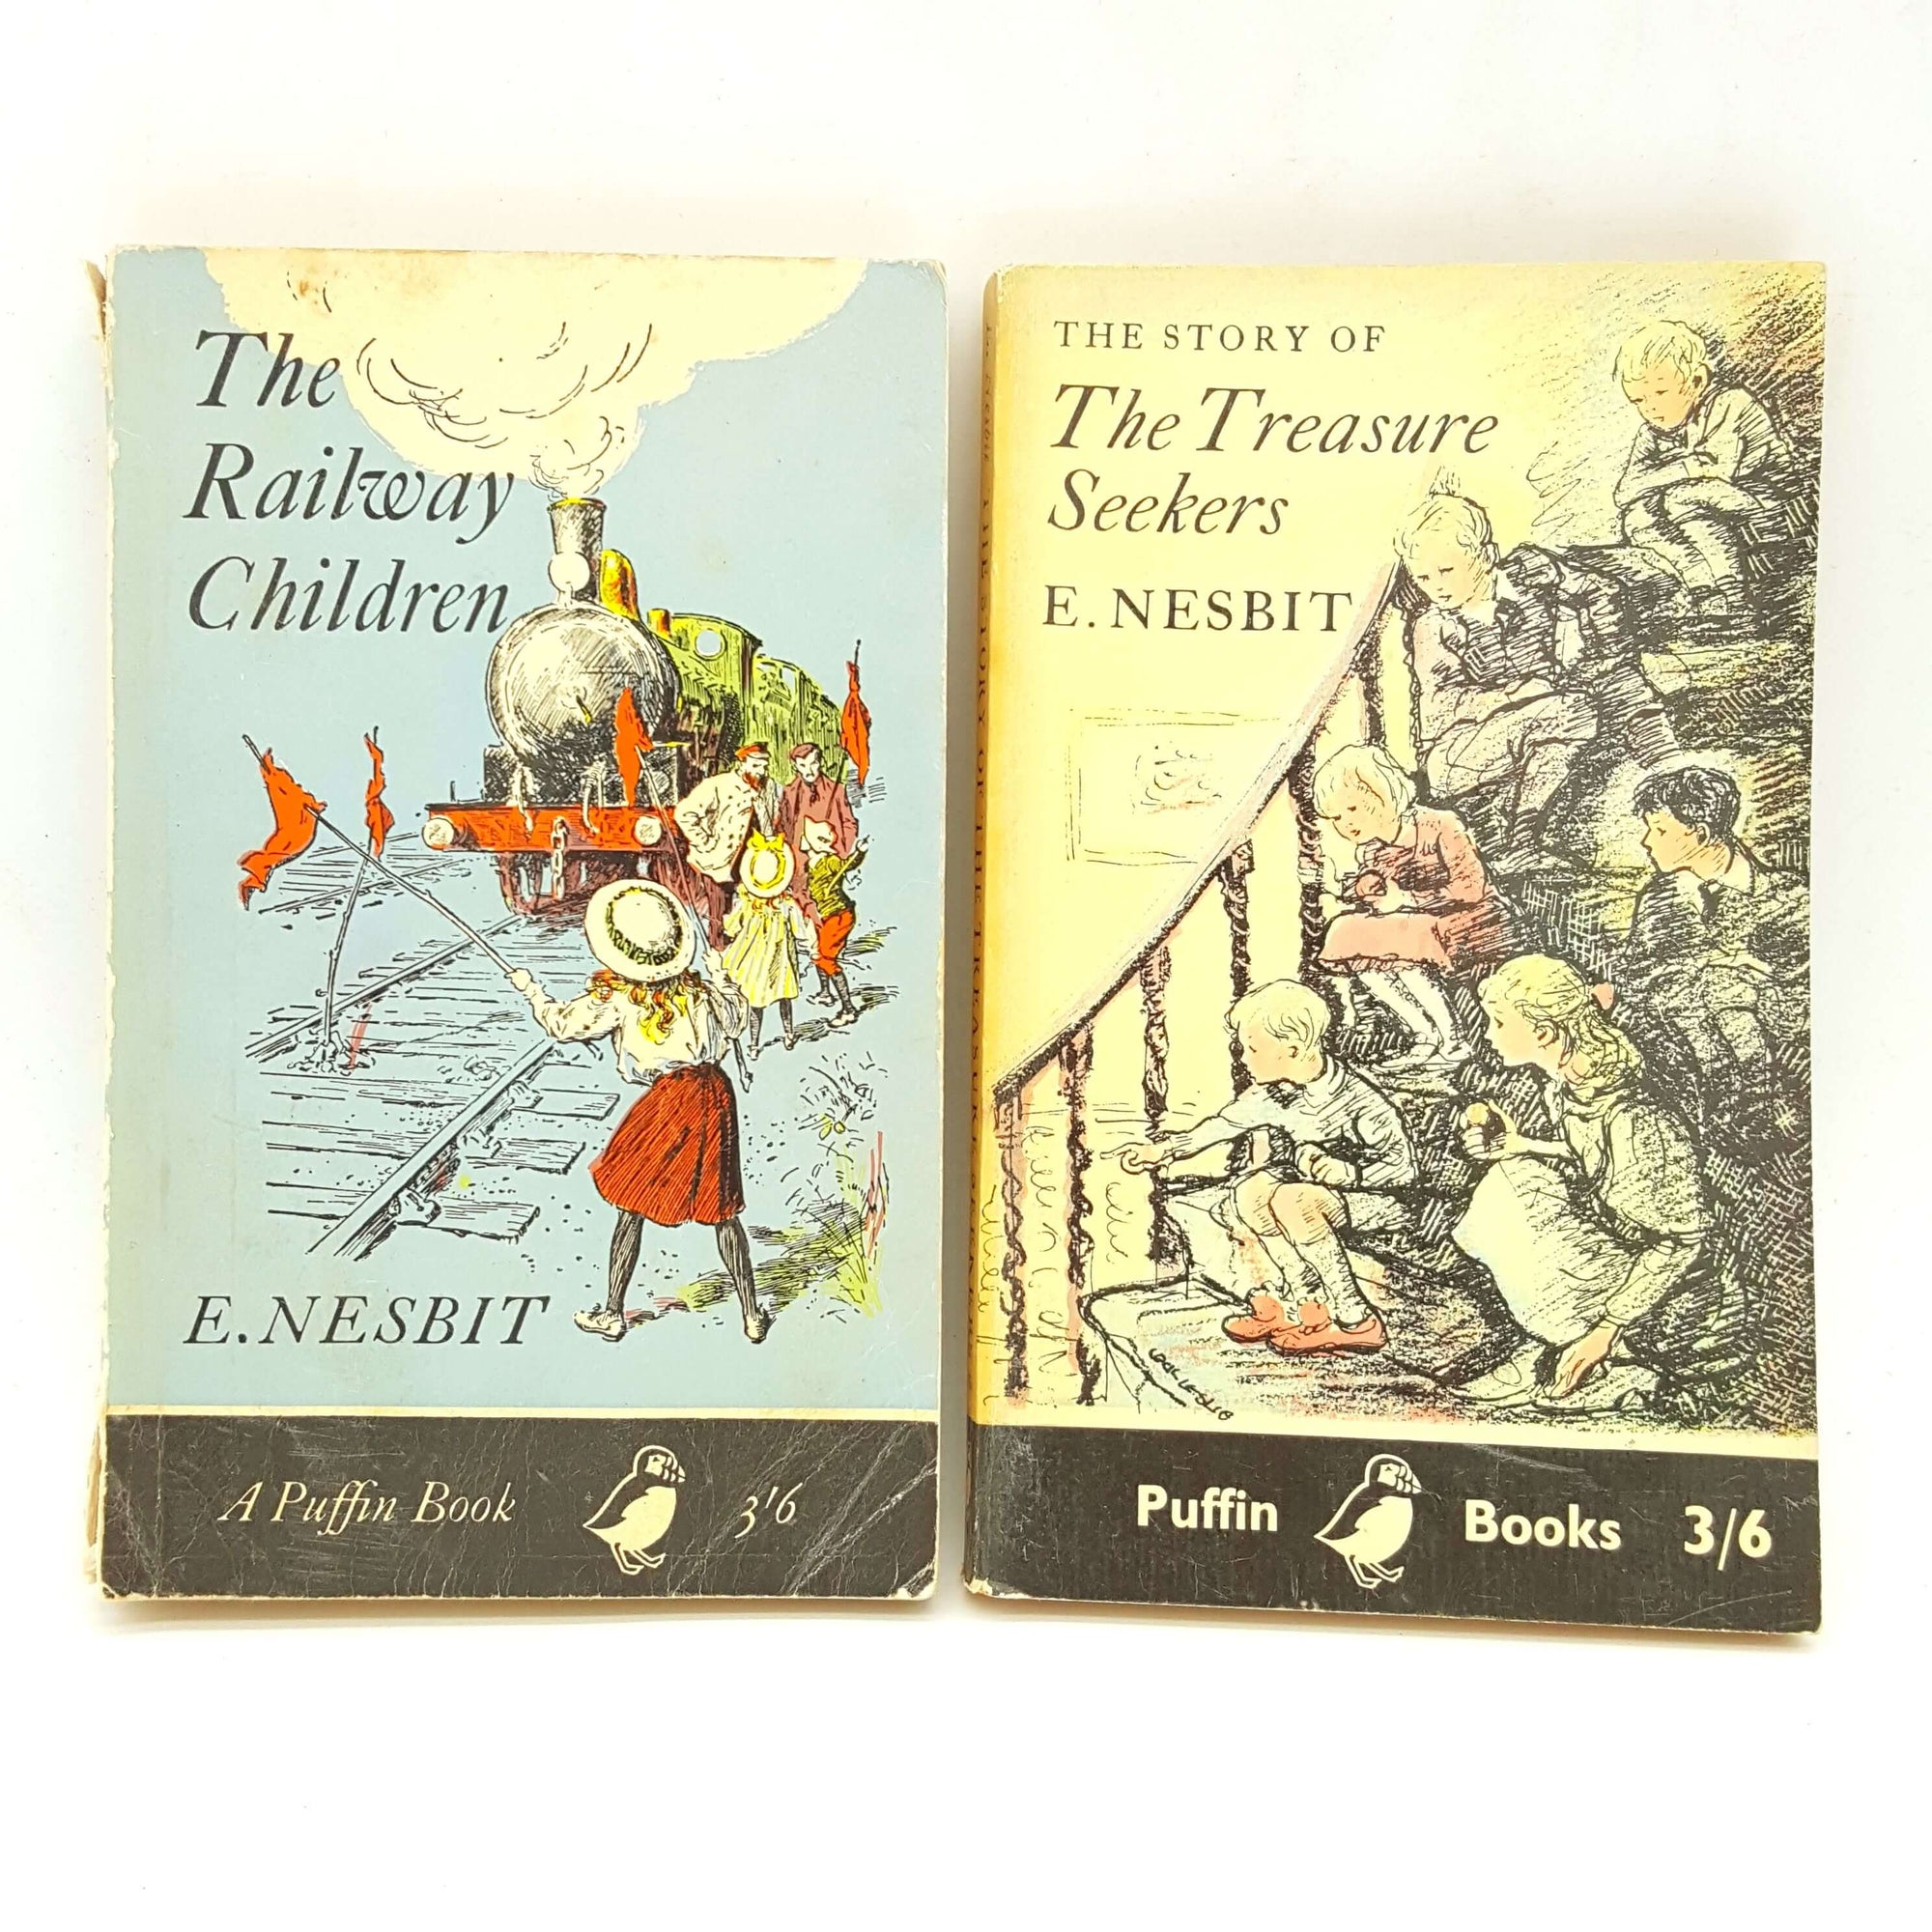 E.Nesbit The Railway Children and The Treasure Seekers 1963 - Puffin Books Country House Library